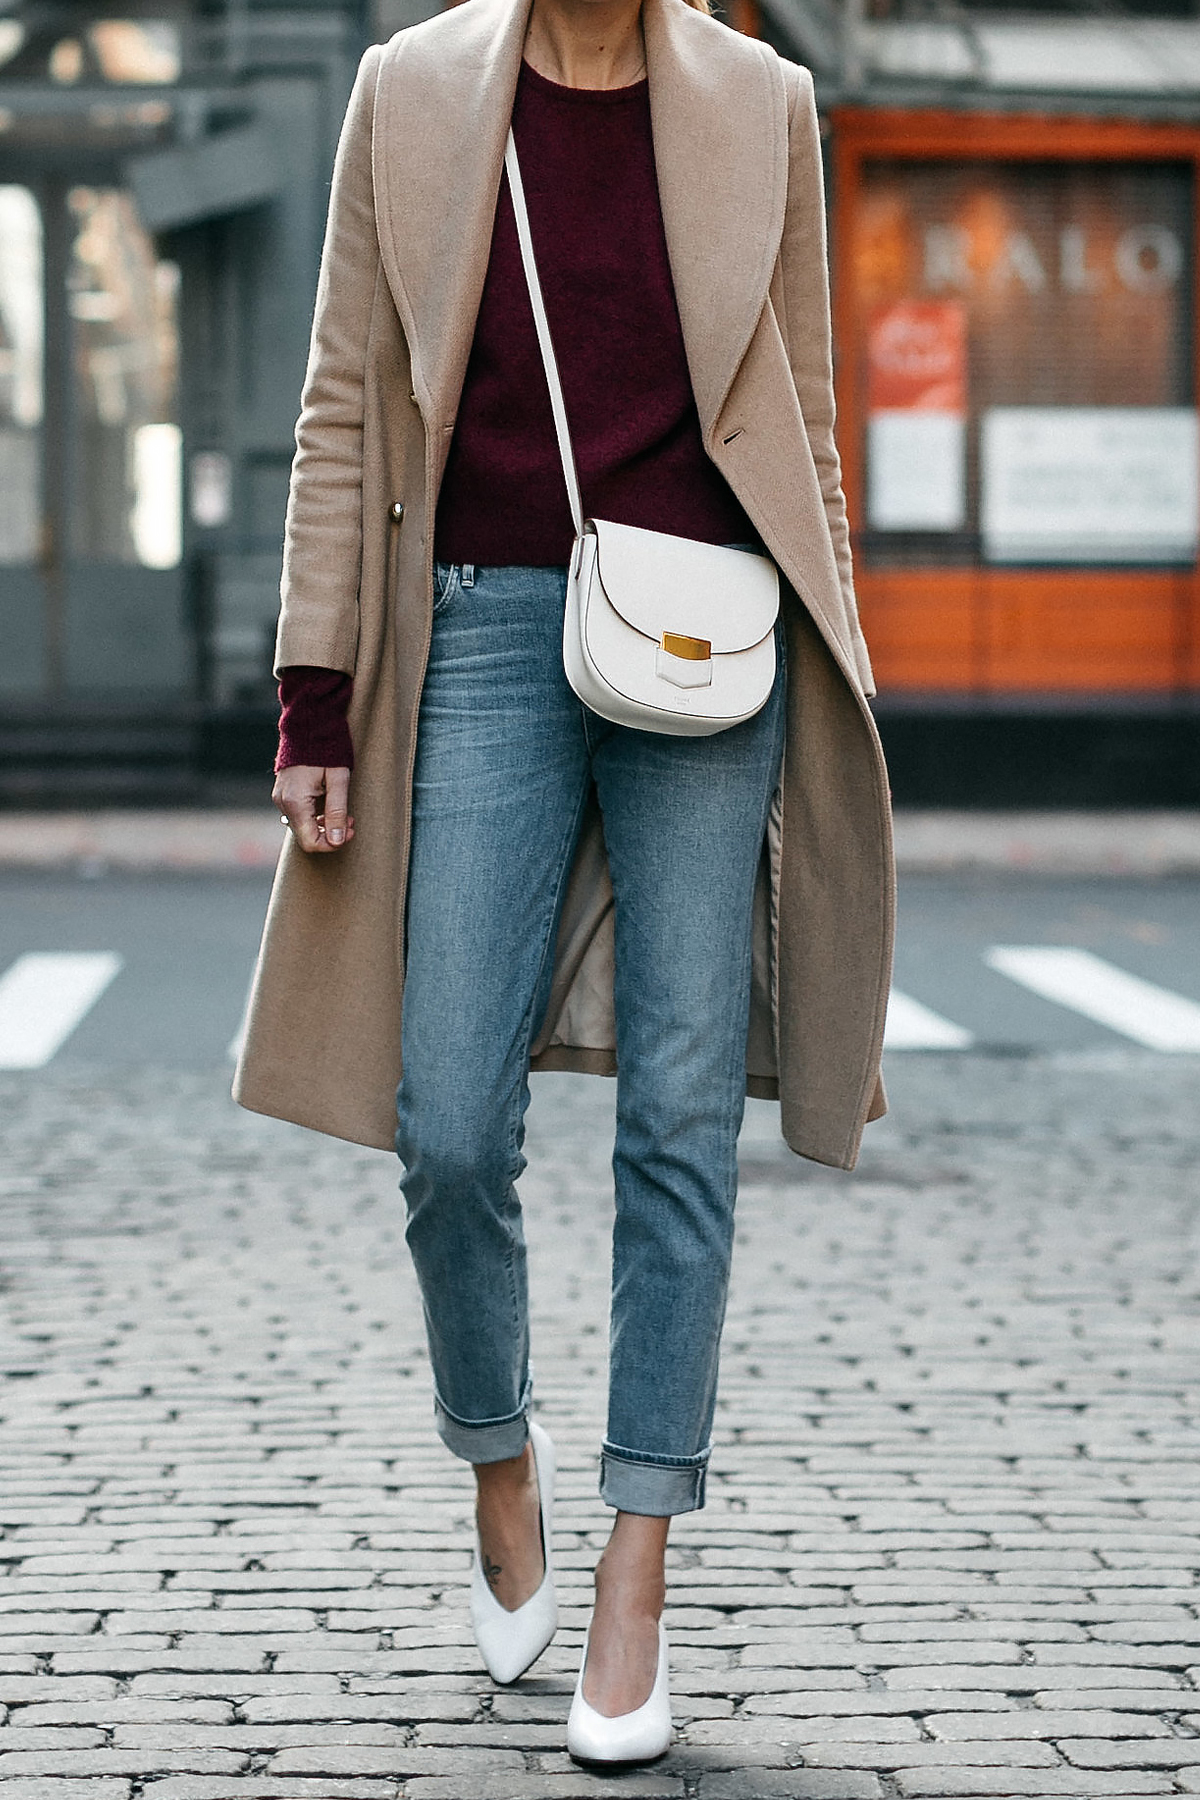 Woman Wearing Club Monaco Camel Coat Burgundy Sweater Denim Jeans White Pumps Celine White Trotteur Handbag Fashion Jackson Dallas Blogger Fashion Blogger Street Style New York Fashion Week